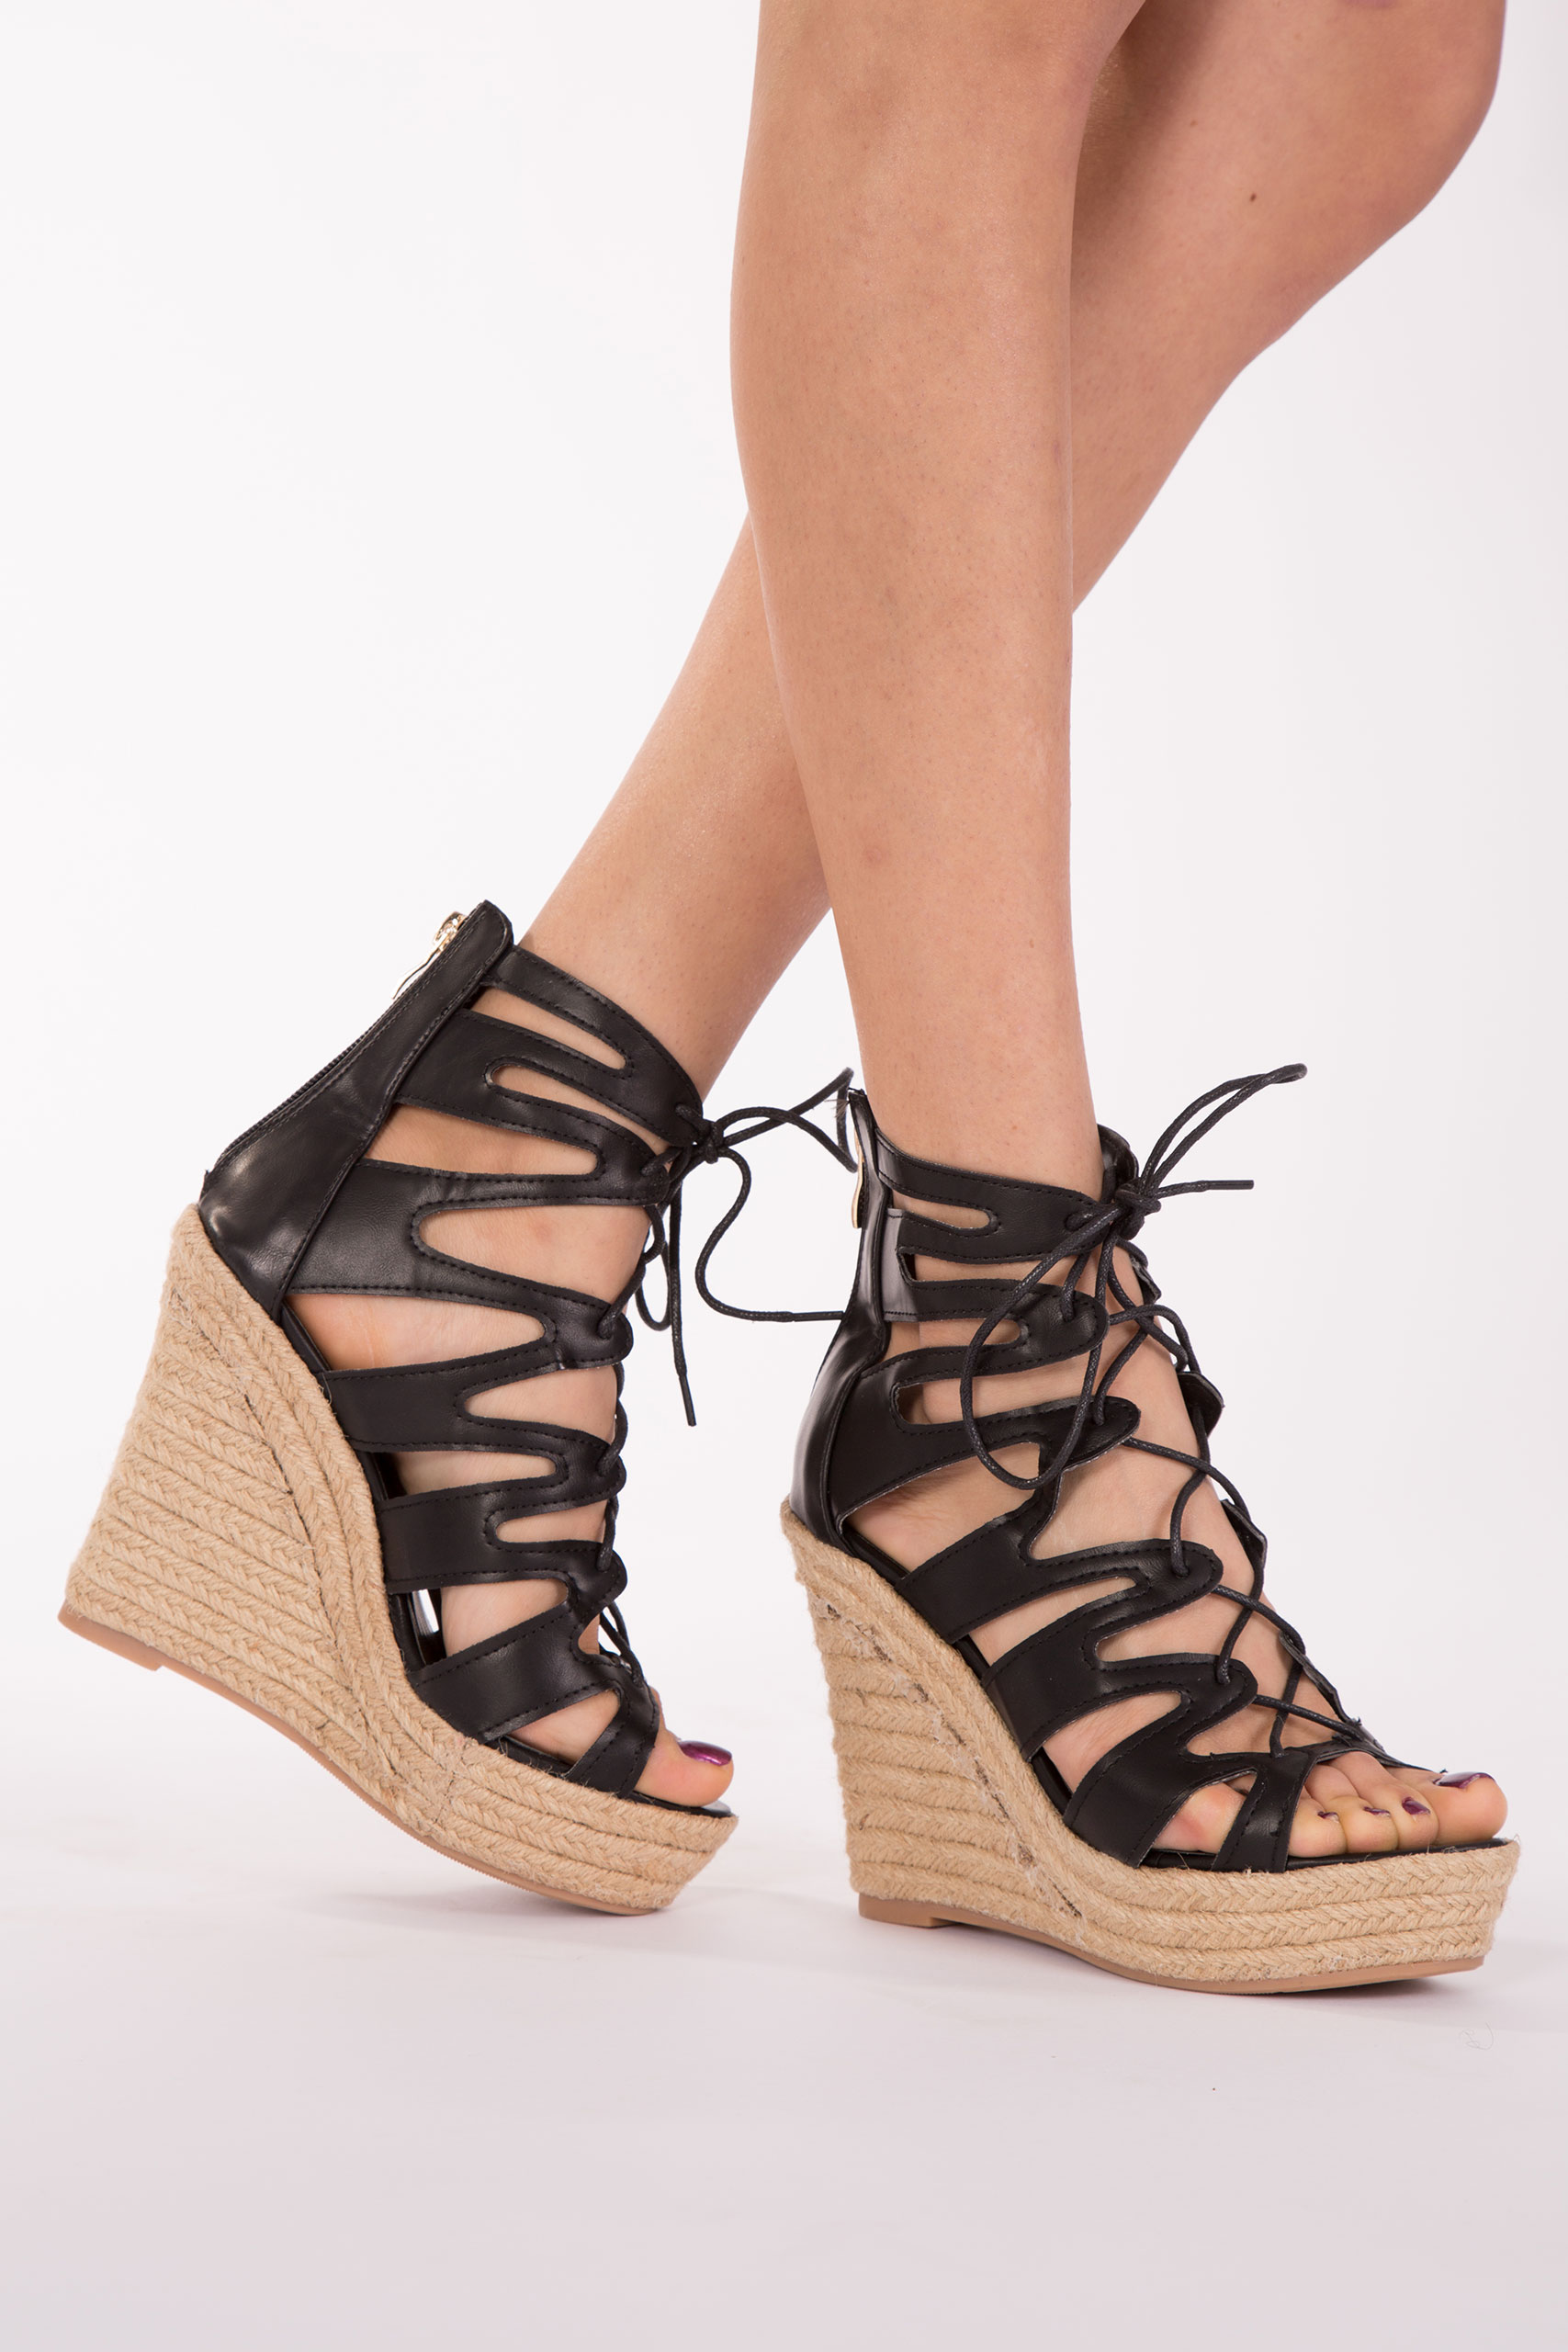 Rev up your look with the sexy styles available at Sinful Shoes. With a wide variety of white-hot high heels, boots, pumps, sandals and more, we have the perfect footwear for any occasion.